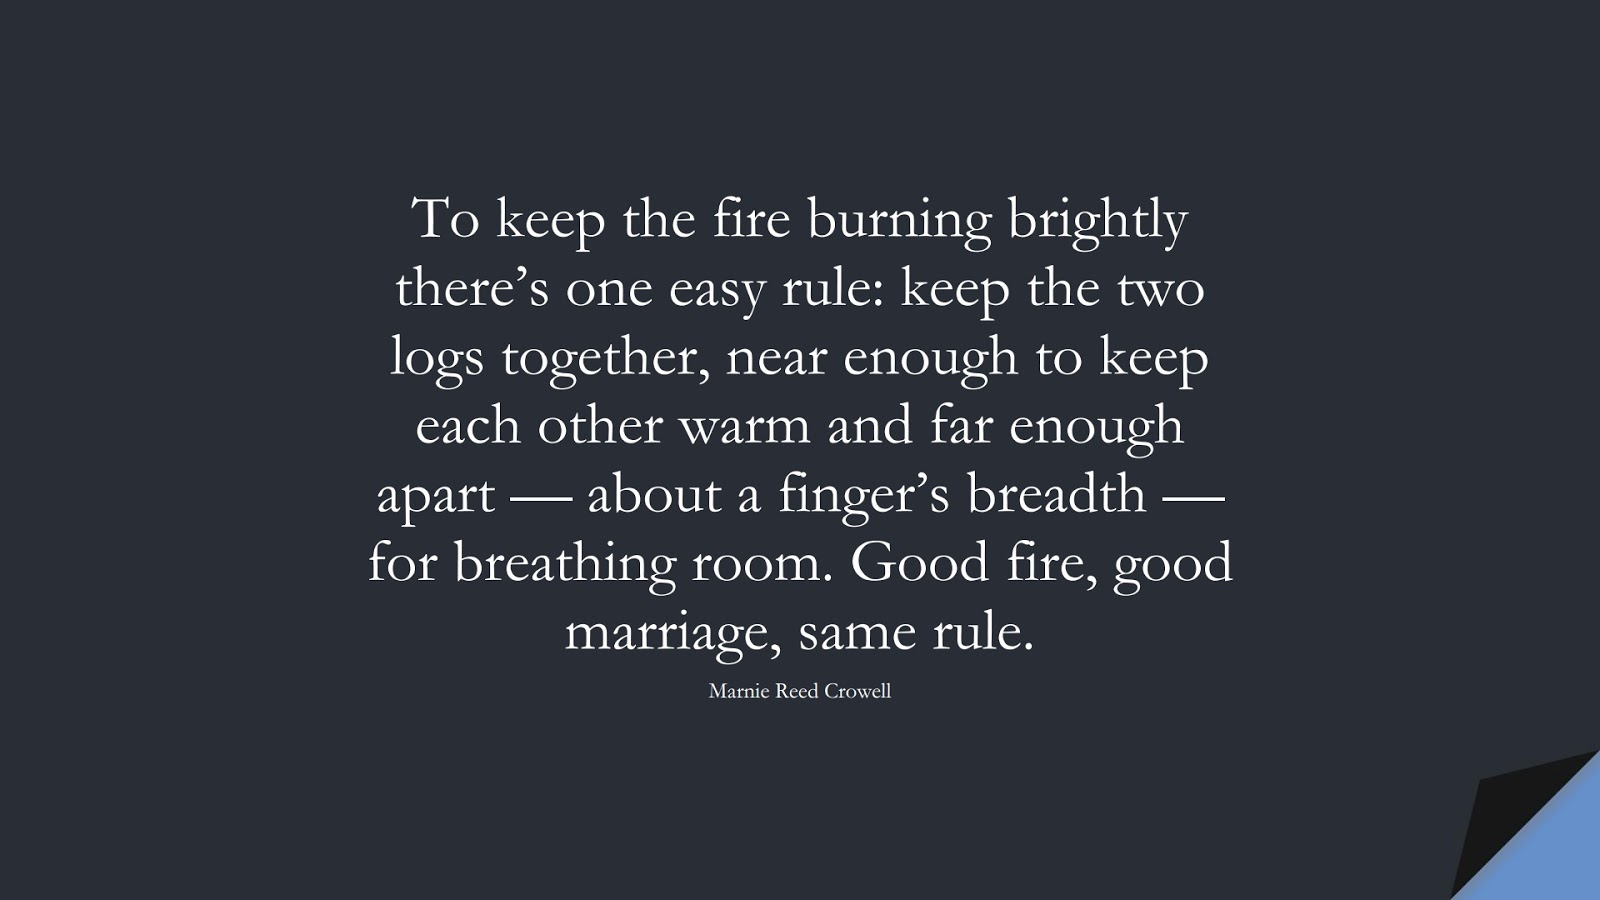 To keep the fire burning brightly there's one easy rule: keep the two logs together, near enough to keep each other warm and far enough apart — about a finger's breadth — for breathing room. Good fire, good marriage, same rule. (Marnie Reed Crowell);  #RelationshipQuotes